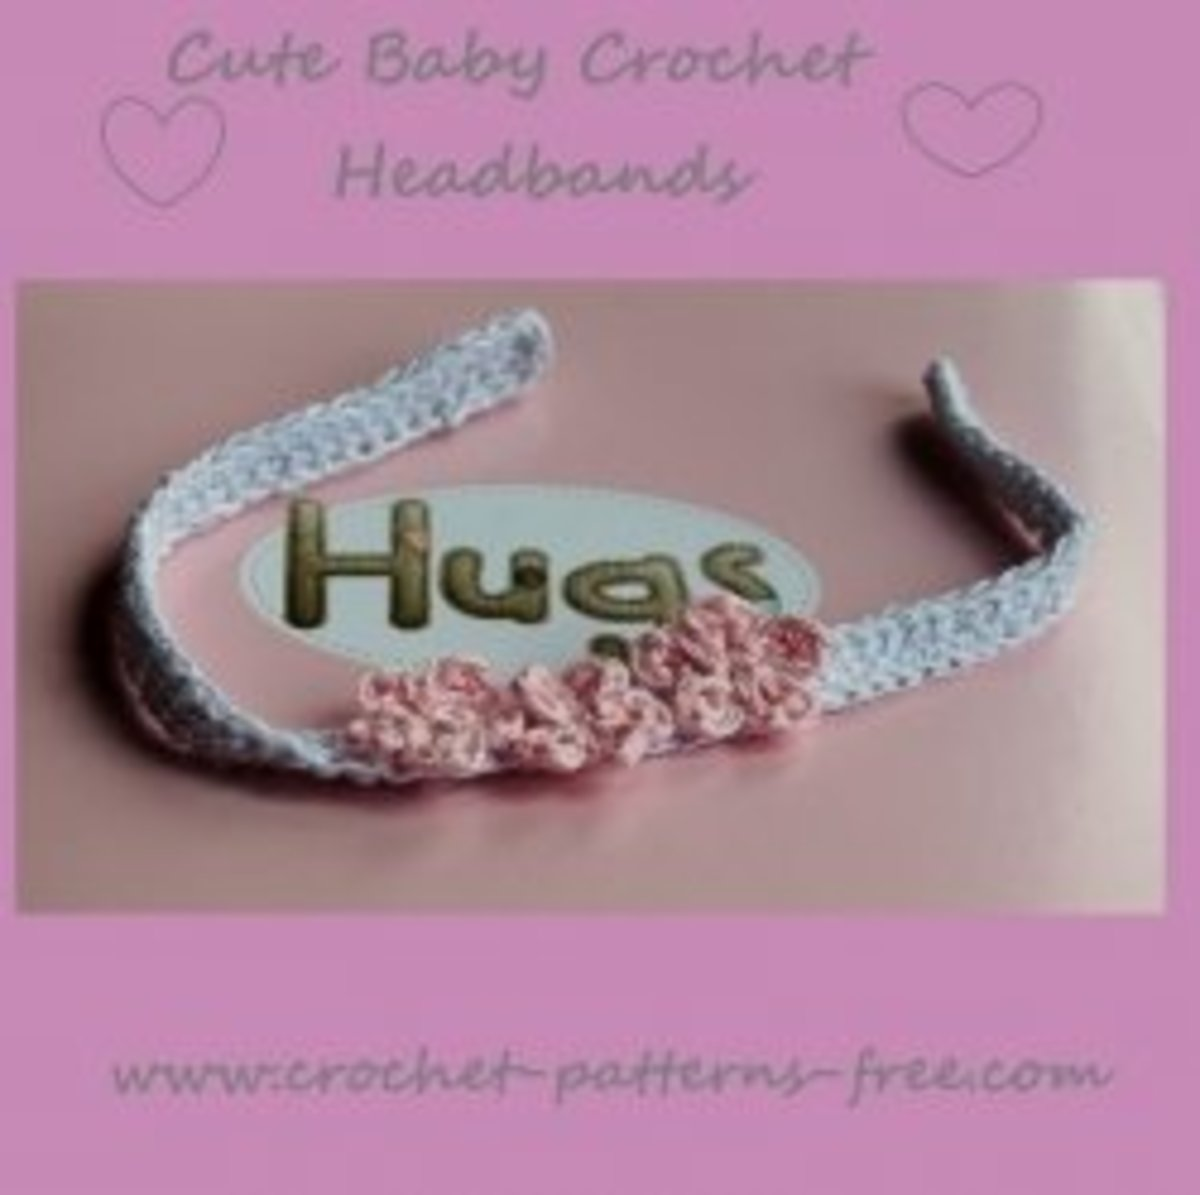 Cute Baby Crochet Headband Patterns